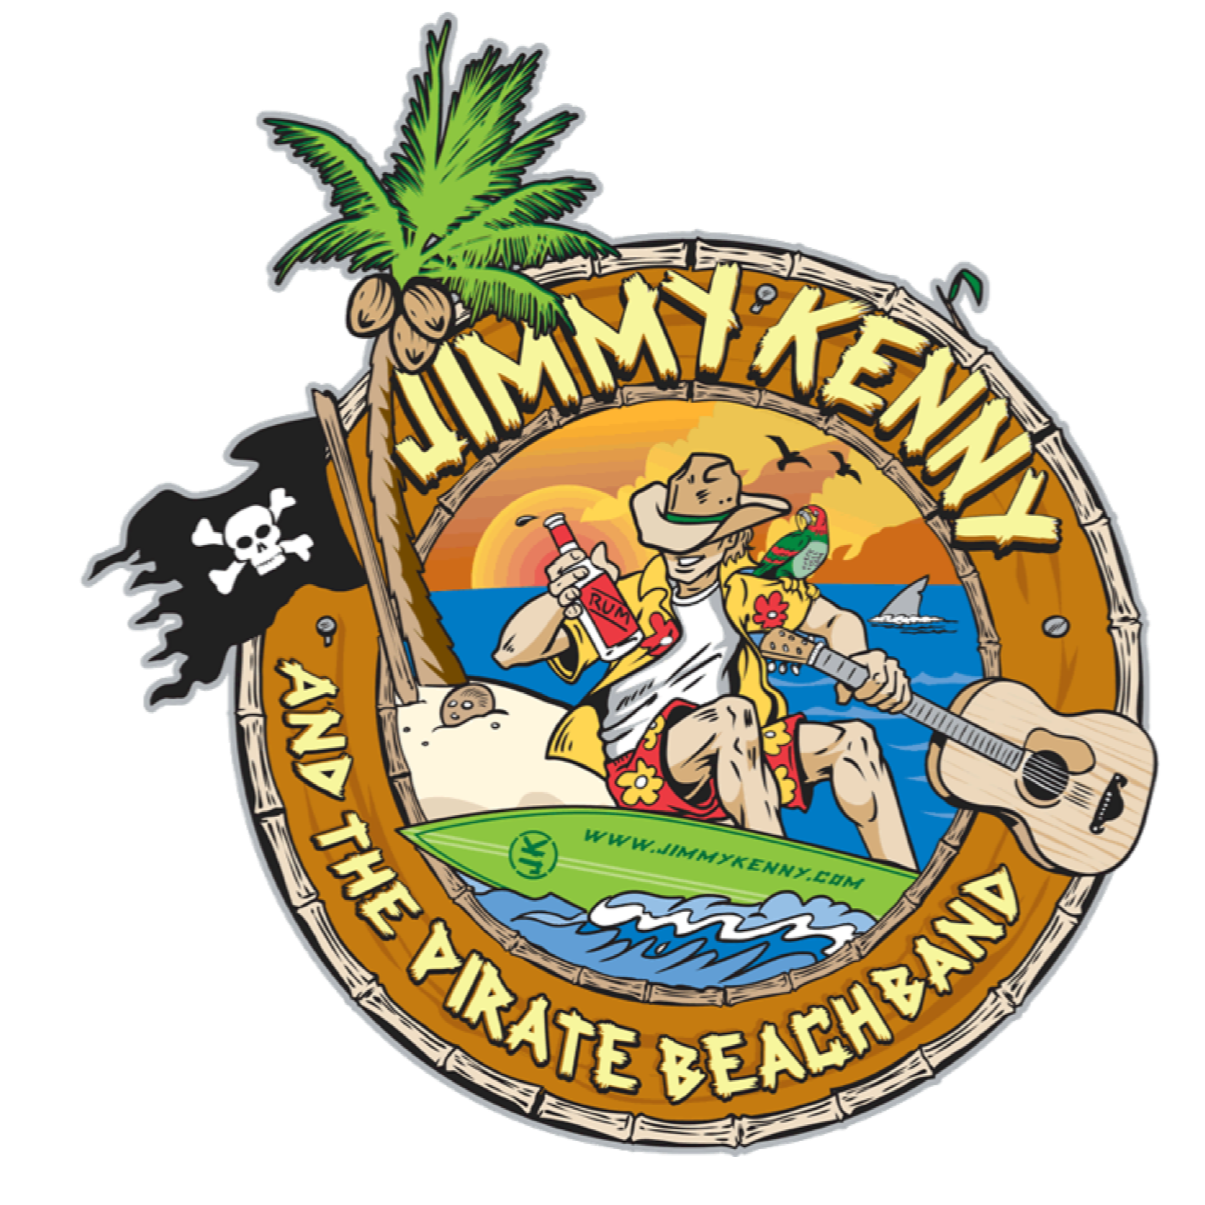 @rockonconcerts Sat 11/13 - JIMMY KENNY & THE PIRATE BEACH BAND - A Beach Party Tribute To Jimmy Buffett, Kenny Chesney, Zach Brown & More @ Six String Grill & Stage, Foxborough MA * Rescheduled - All tickets honored Link Thumbnail | Linktree